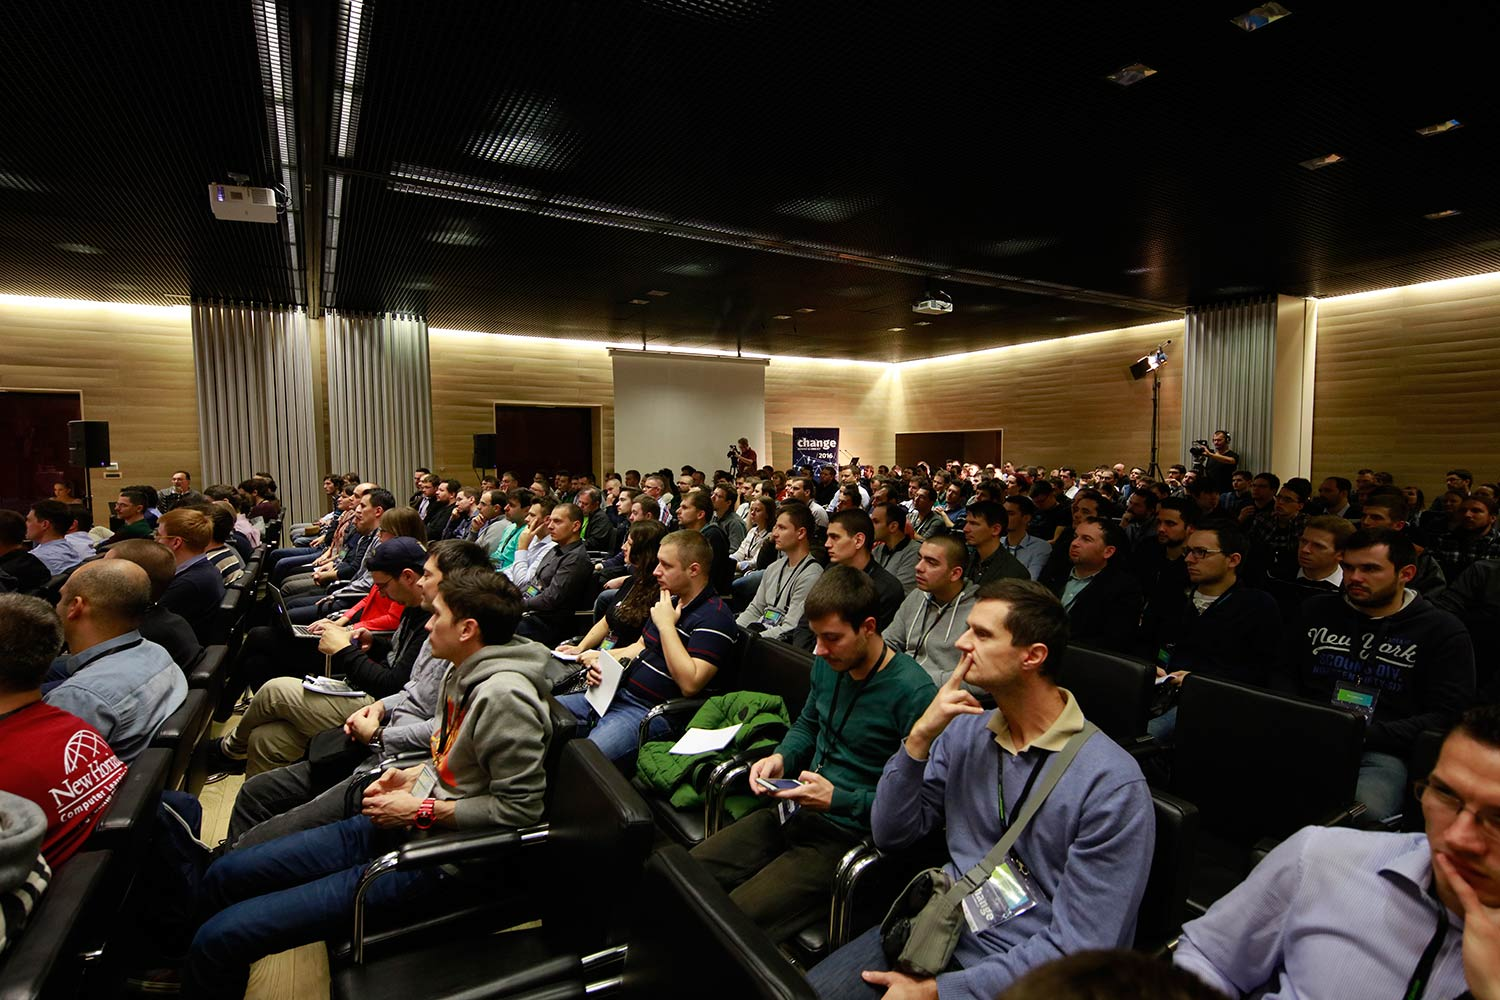 http://2016.changecon.com/wp-content/uploads/2016/10/audience_02.jpg